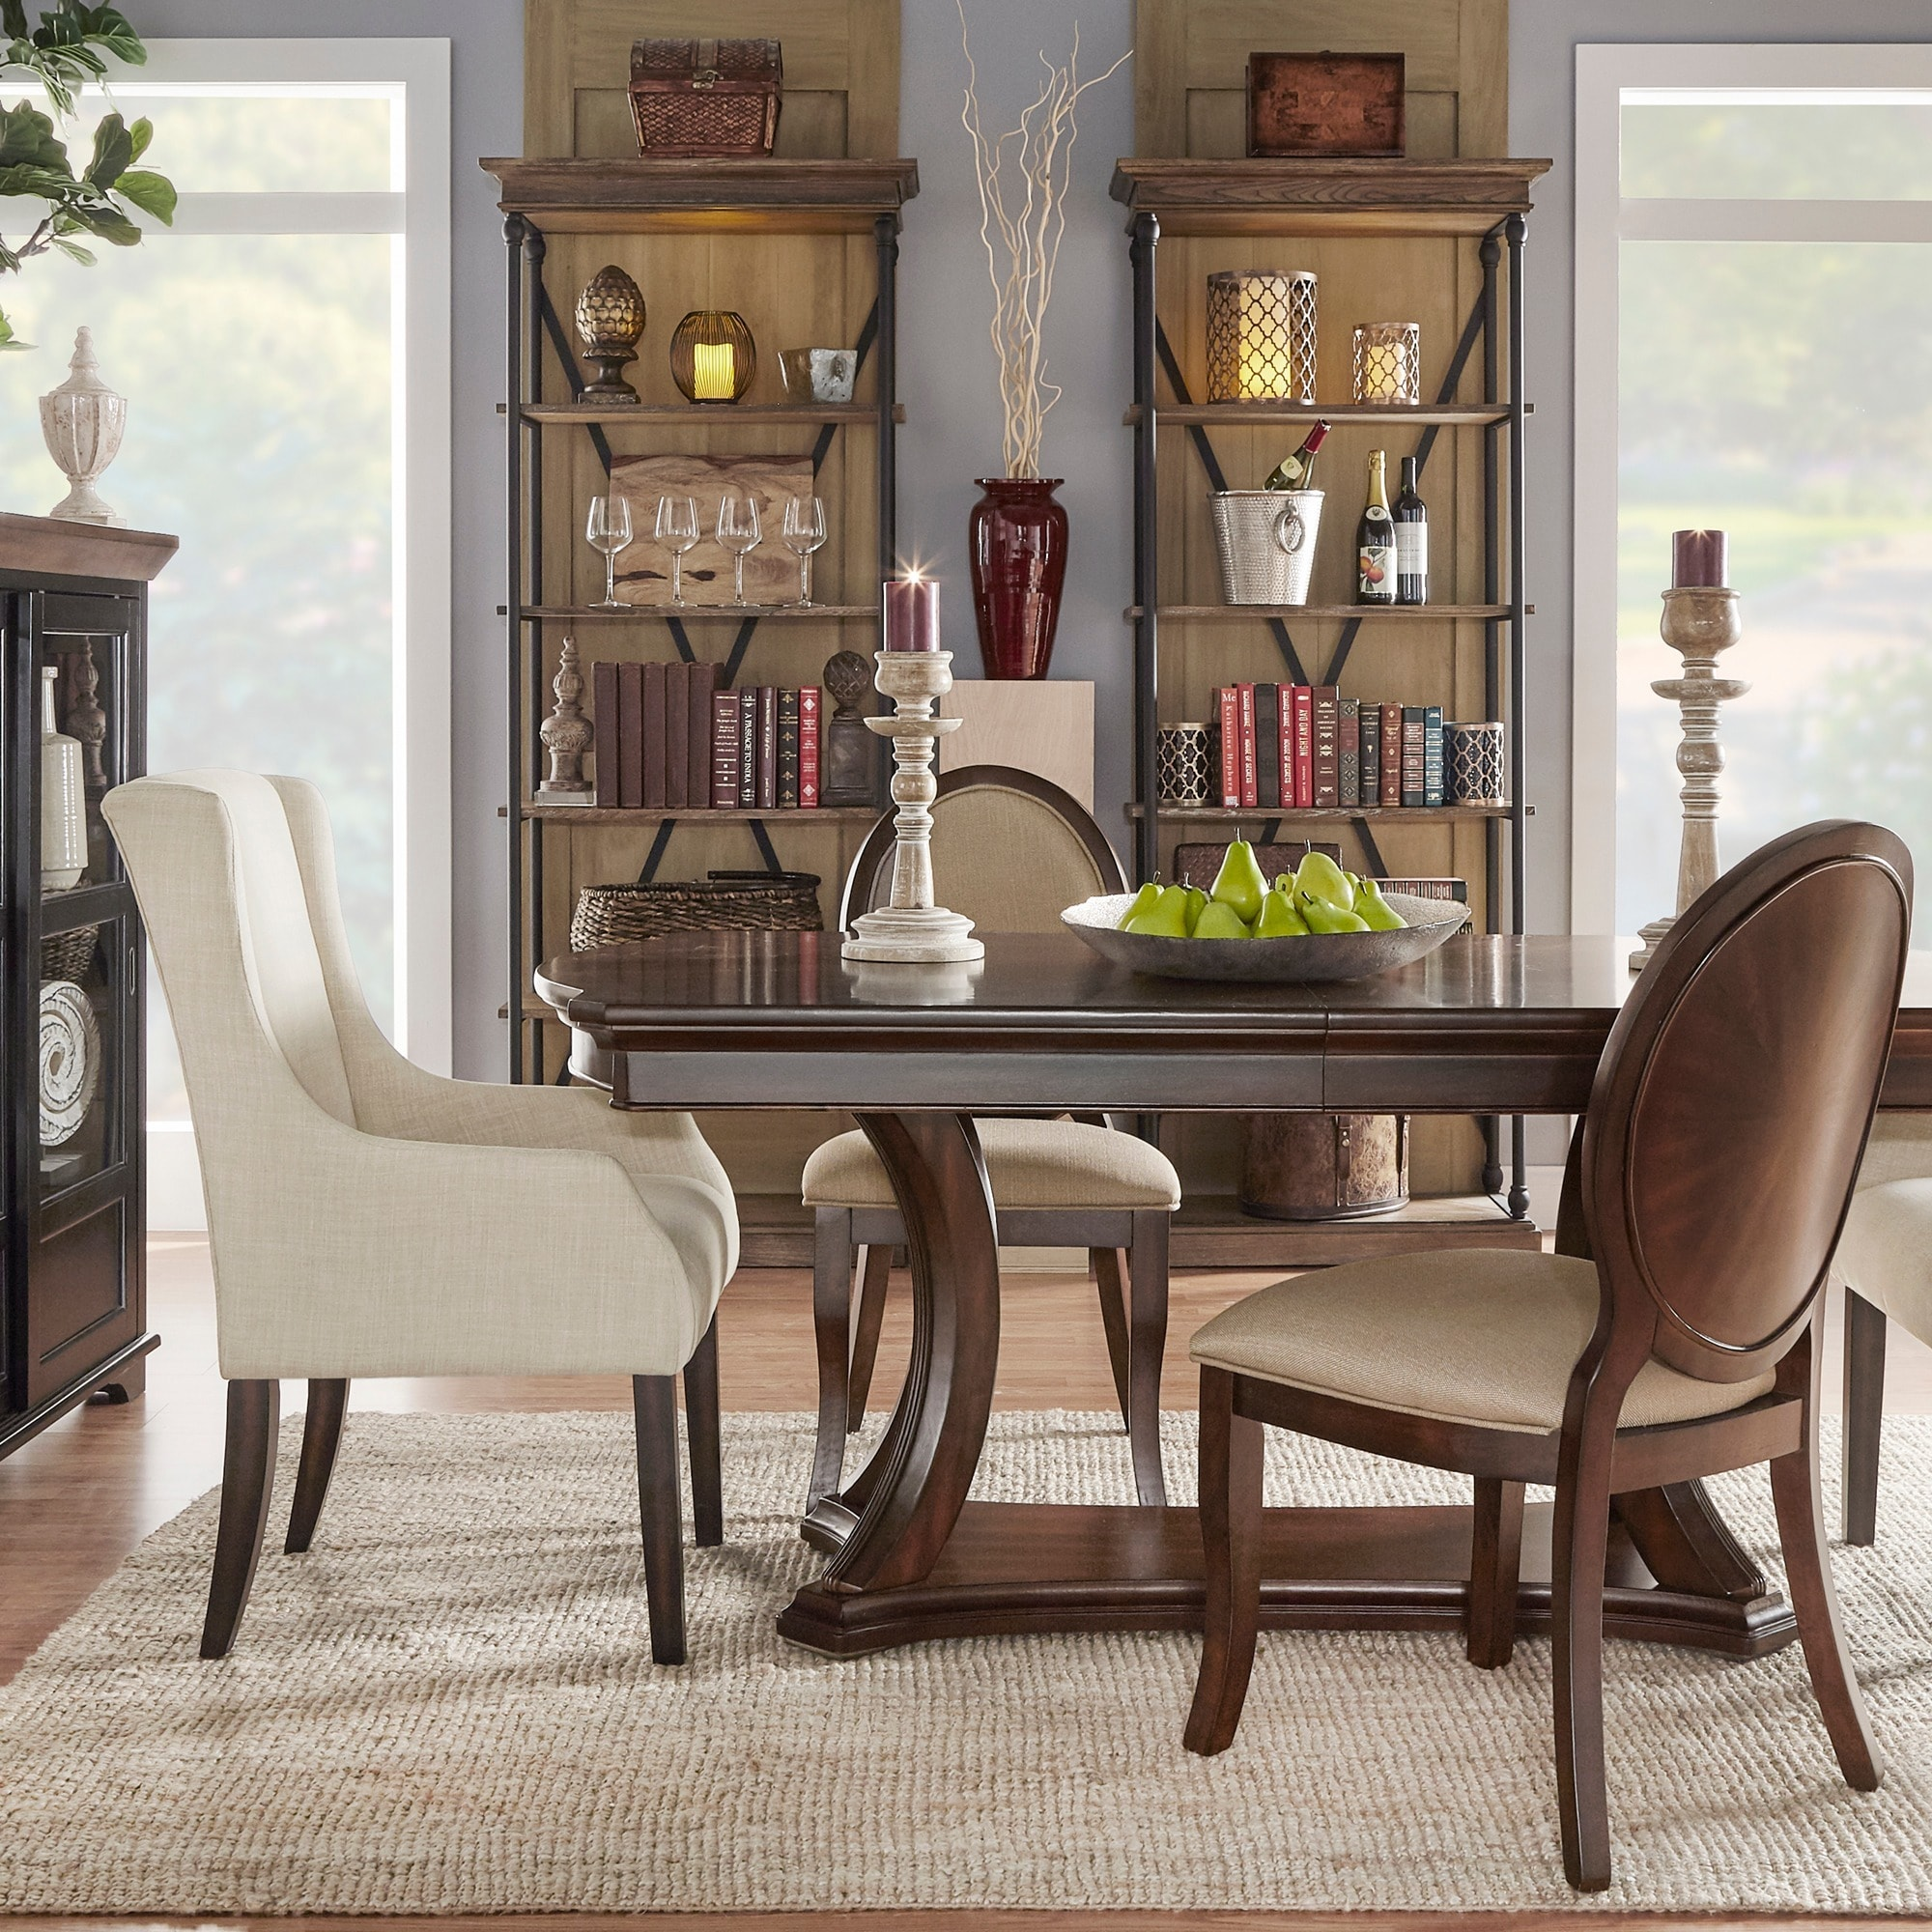 Verdiana Rich Brown Cherry Finish Extending Dining Table By Inspire Q Clic